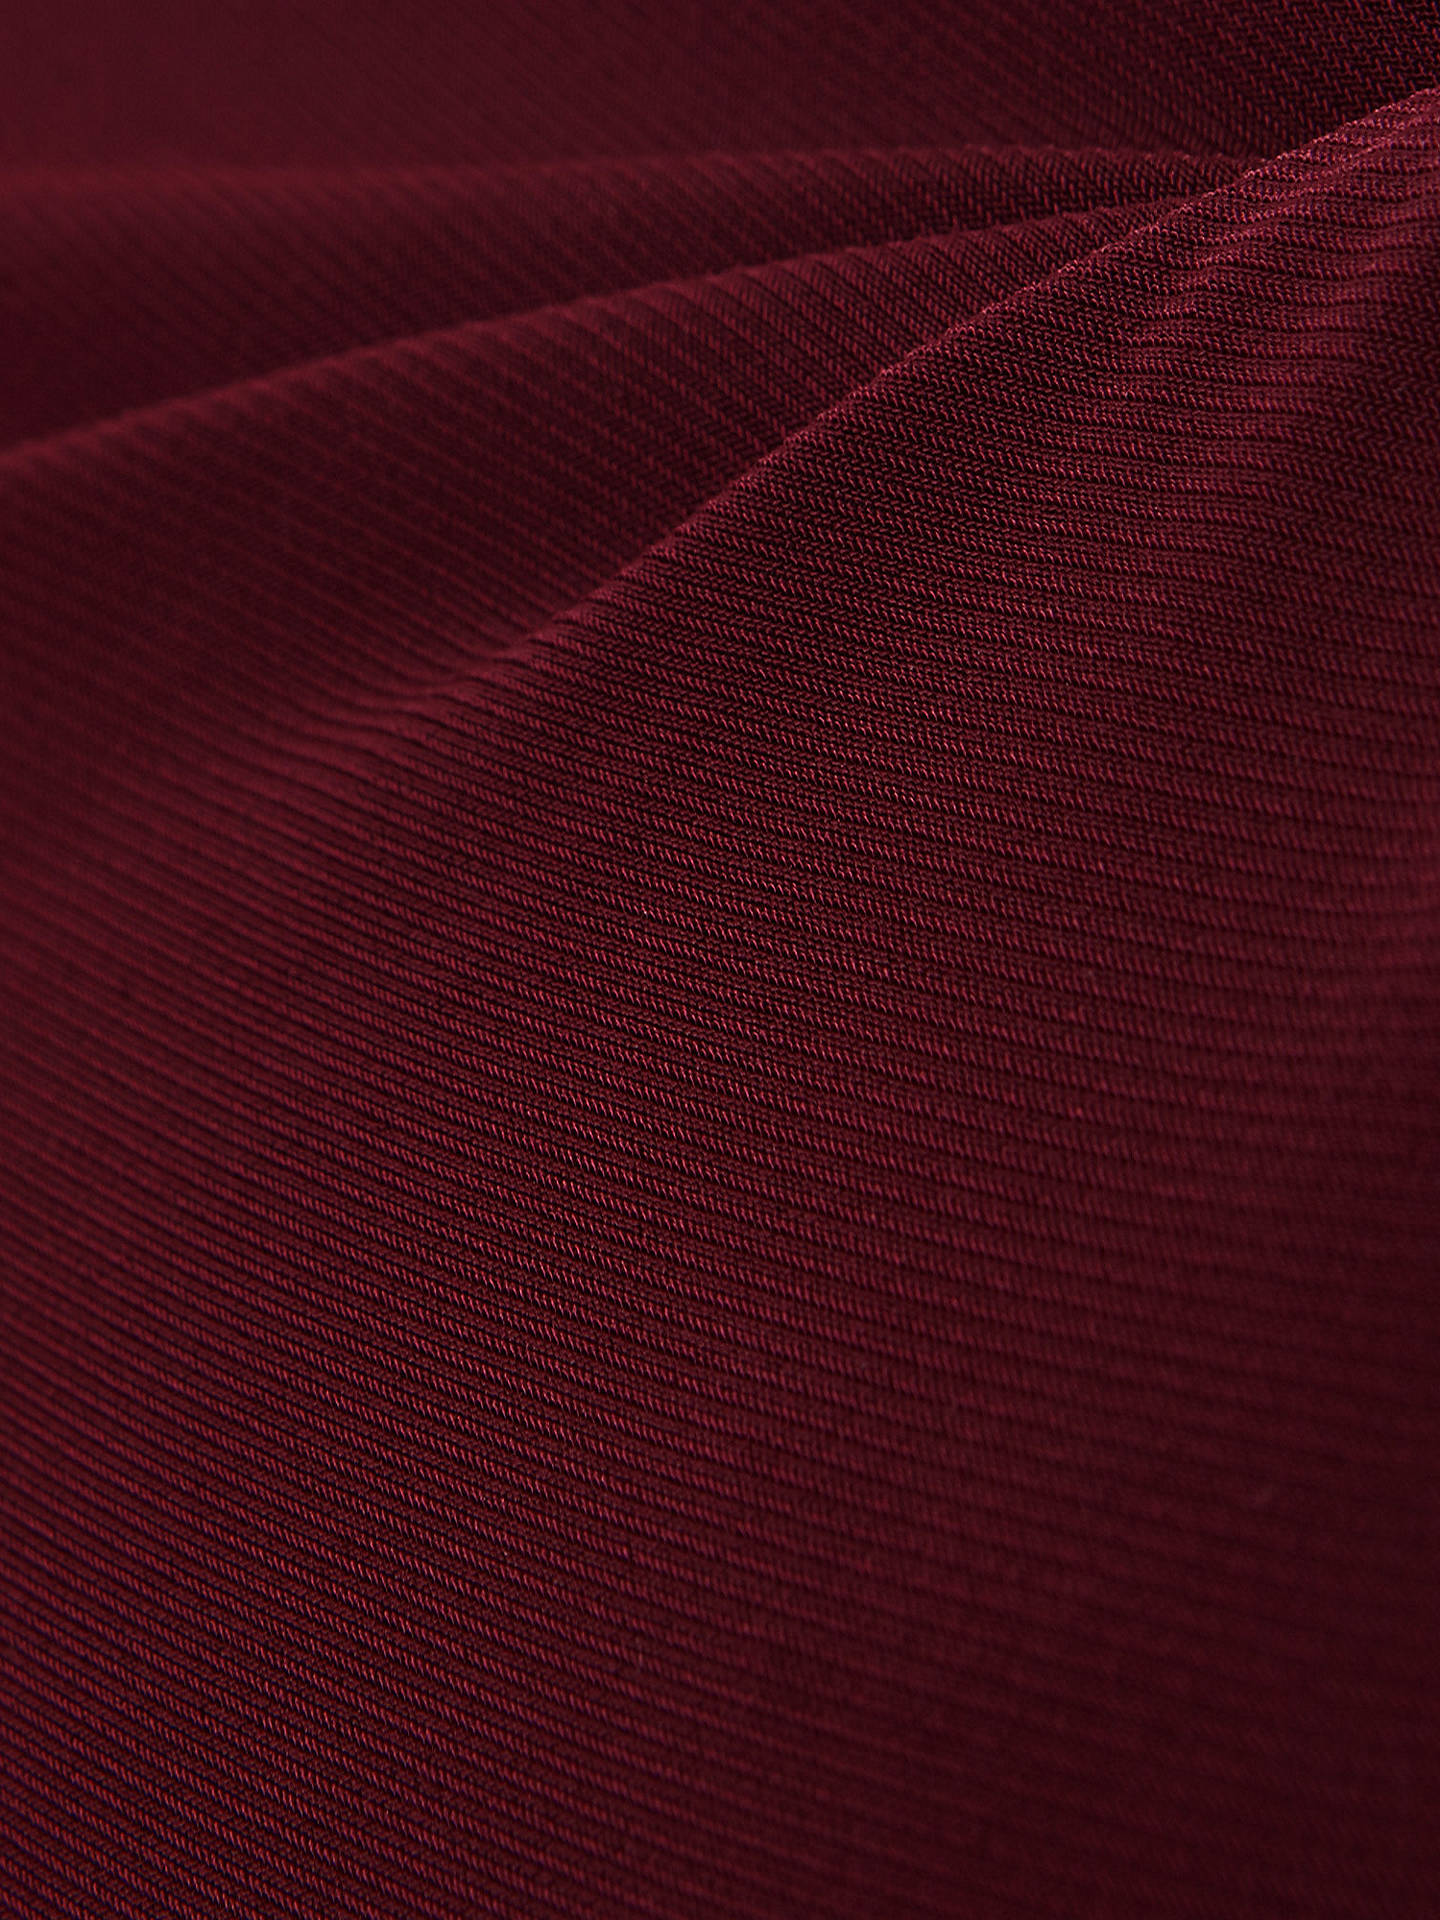 BuyStudio 8 Hestor Knot Top, Merlot, 18 Online at johnlewis.com